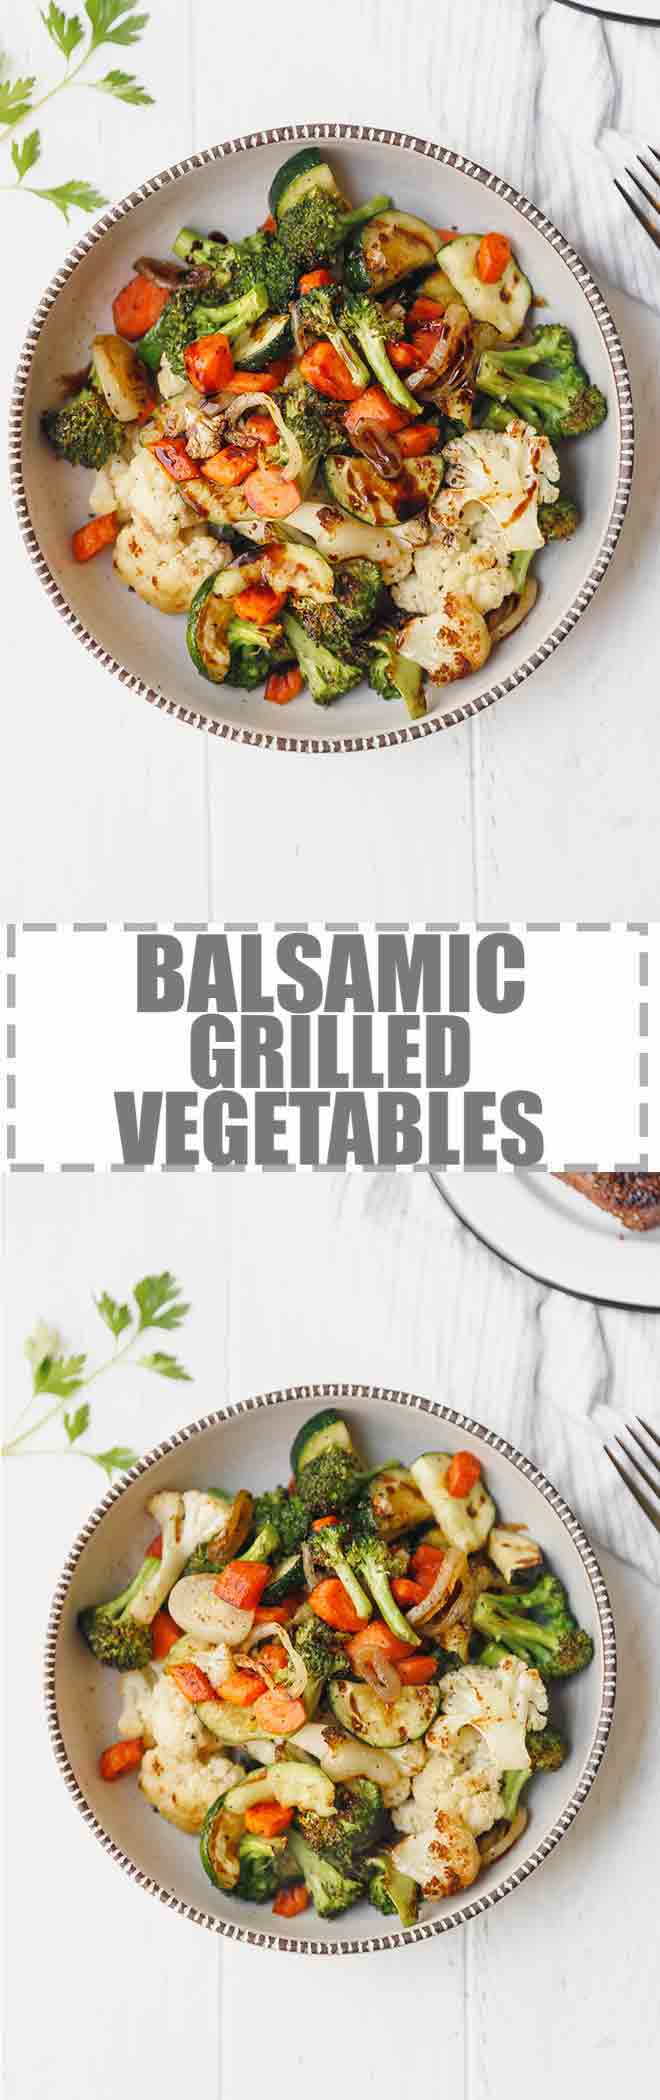 This simple side dish recipe for balsamic grilled vegetables is delicious and perfect for grilling season. #balsamic #grilling #grilledvegetables #grillingseason